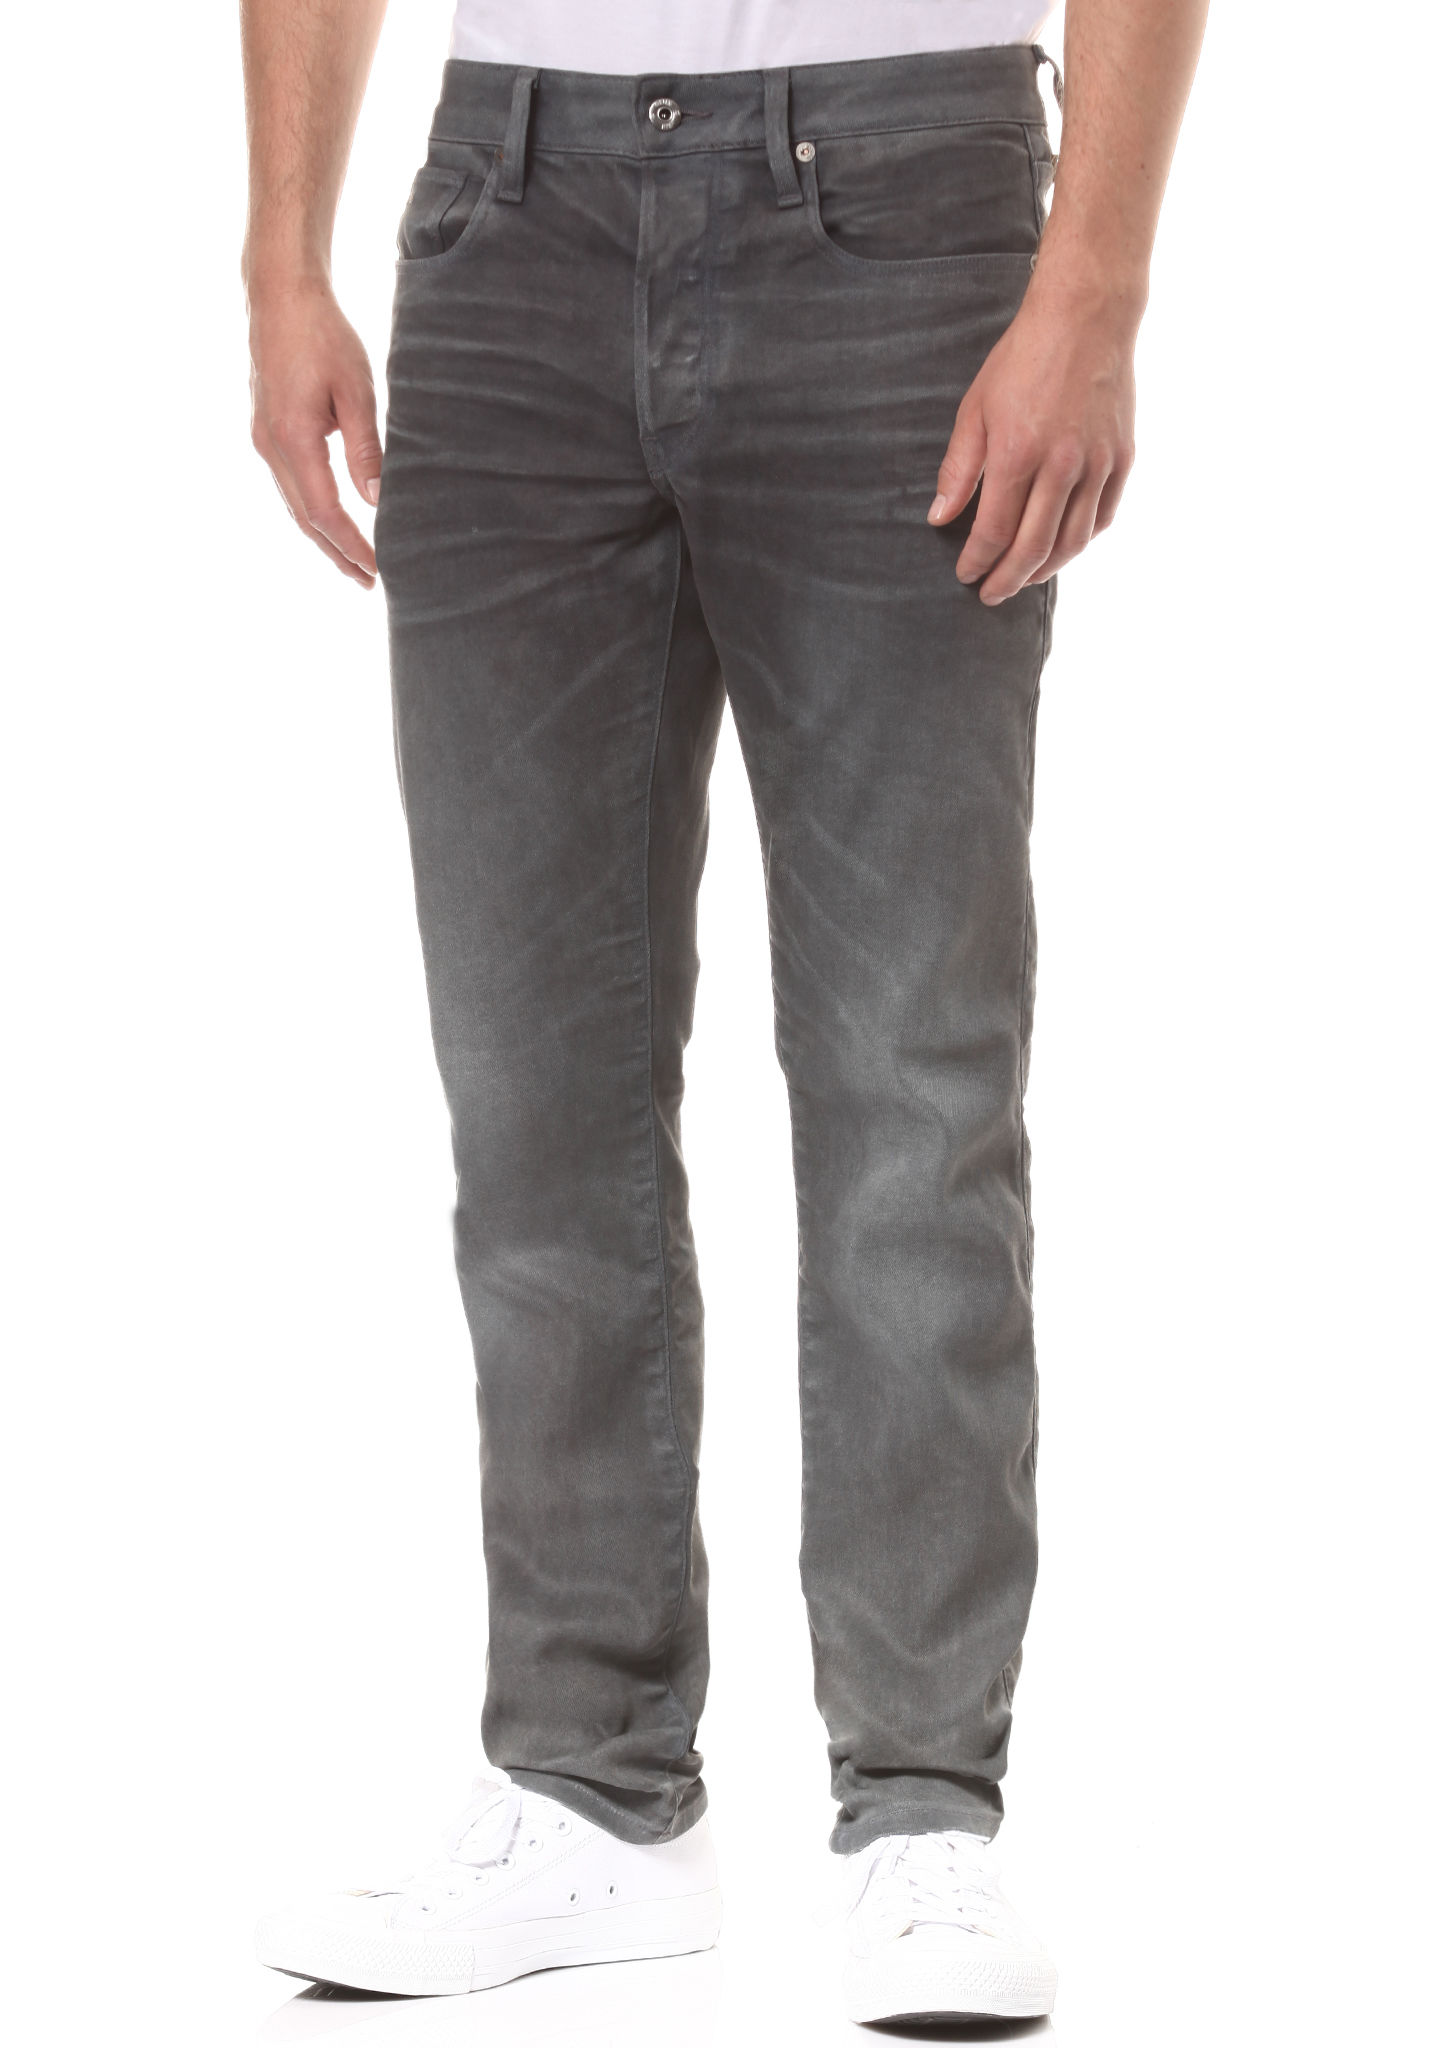 60cee6feef4bac G-STAR 3301 Slim-Loomer Stretch - Denim Jeans for Men - Grey - Planet Sports